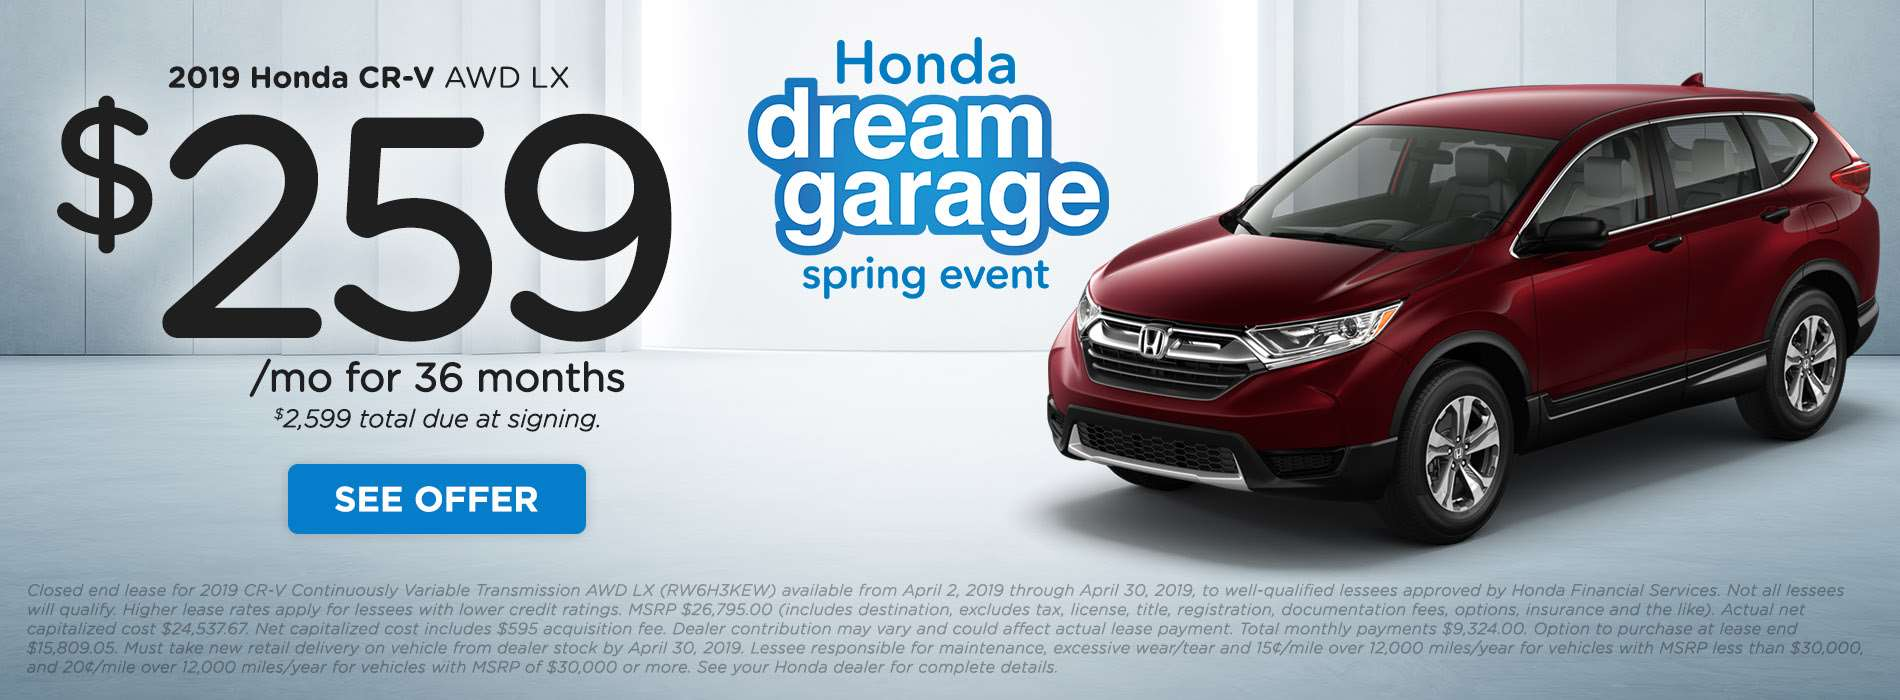 DLH - Spring Clearance CRV - Mar-Apr 2019